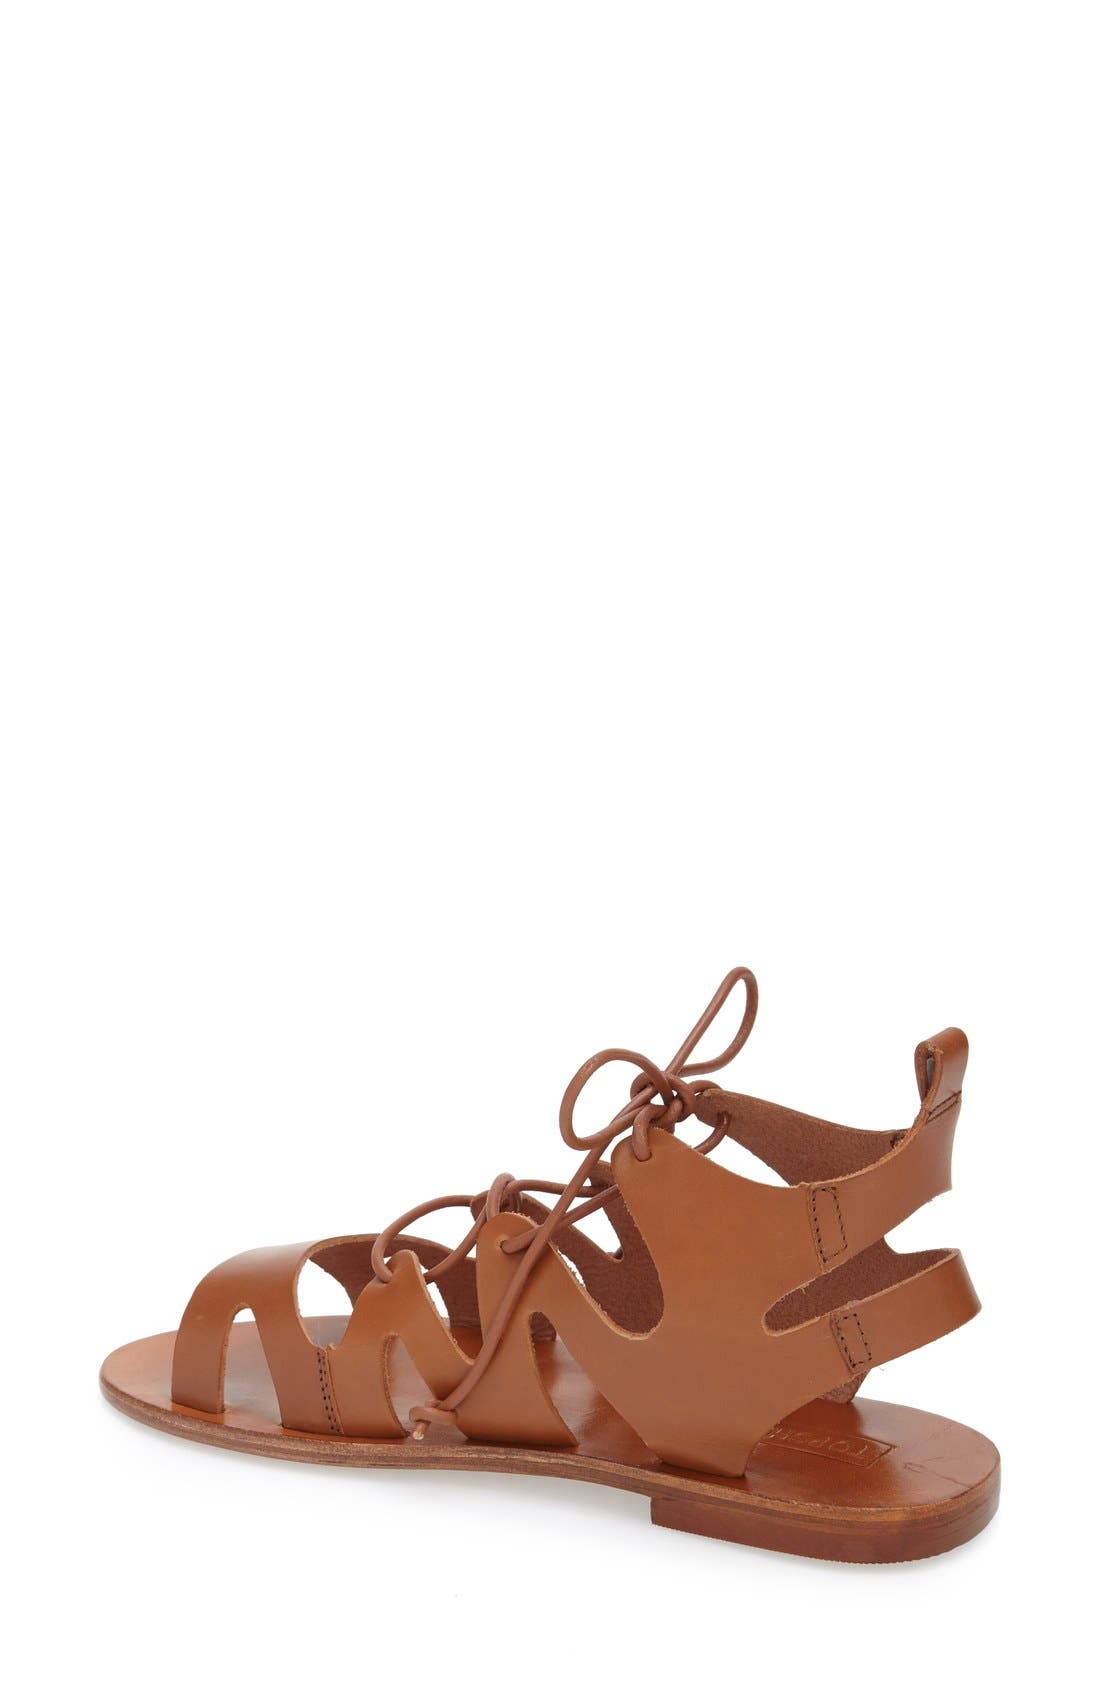 'Fig' Cutout Lace-Up Gladiator Sandal,                             Alternate thumbnail 3, color,                             210